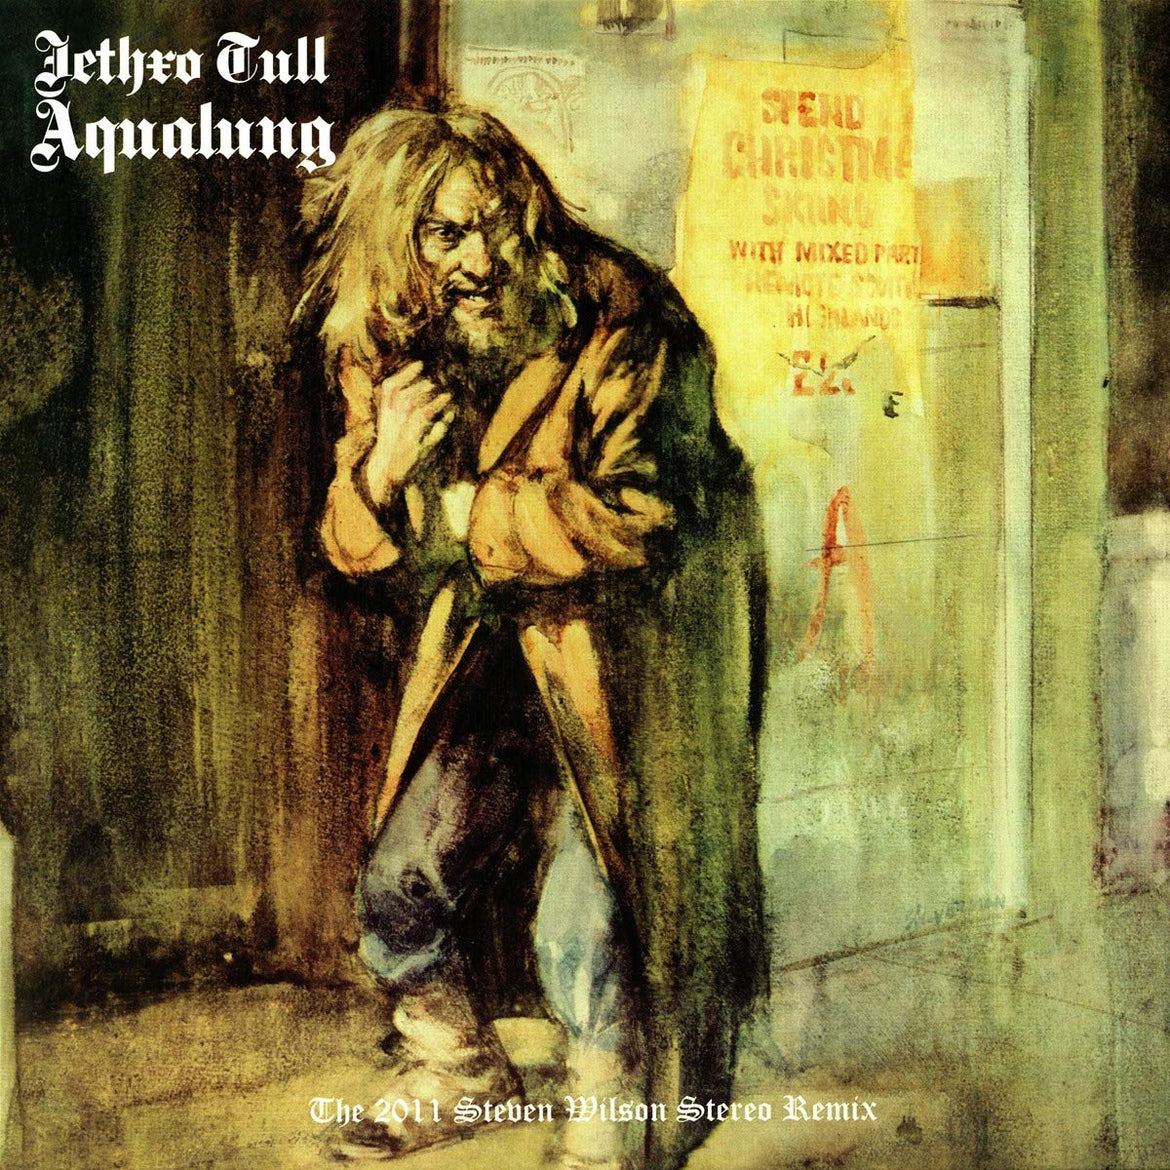 Jethro Tull - Aqualung: Deluxe Edition 180g Vinyl with 24-Page Booklet - Steven Wilson Mix